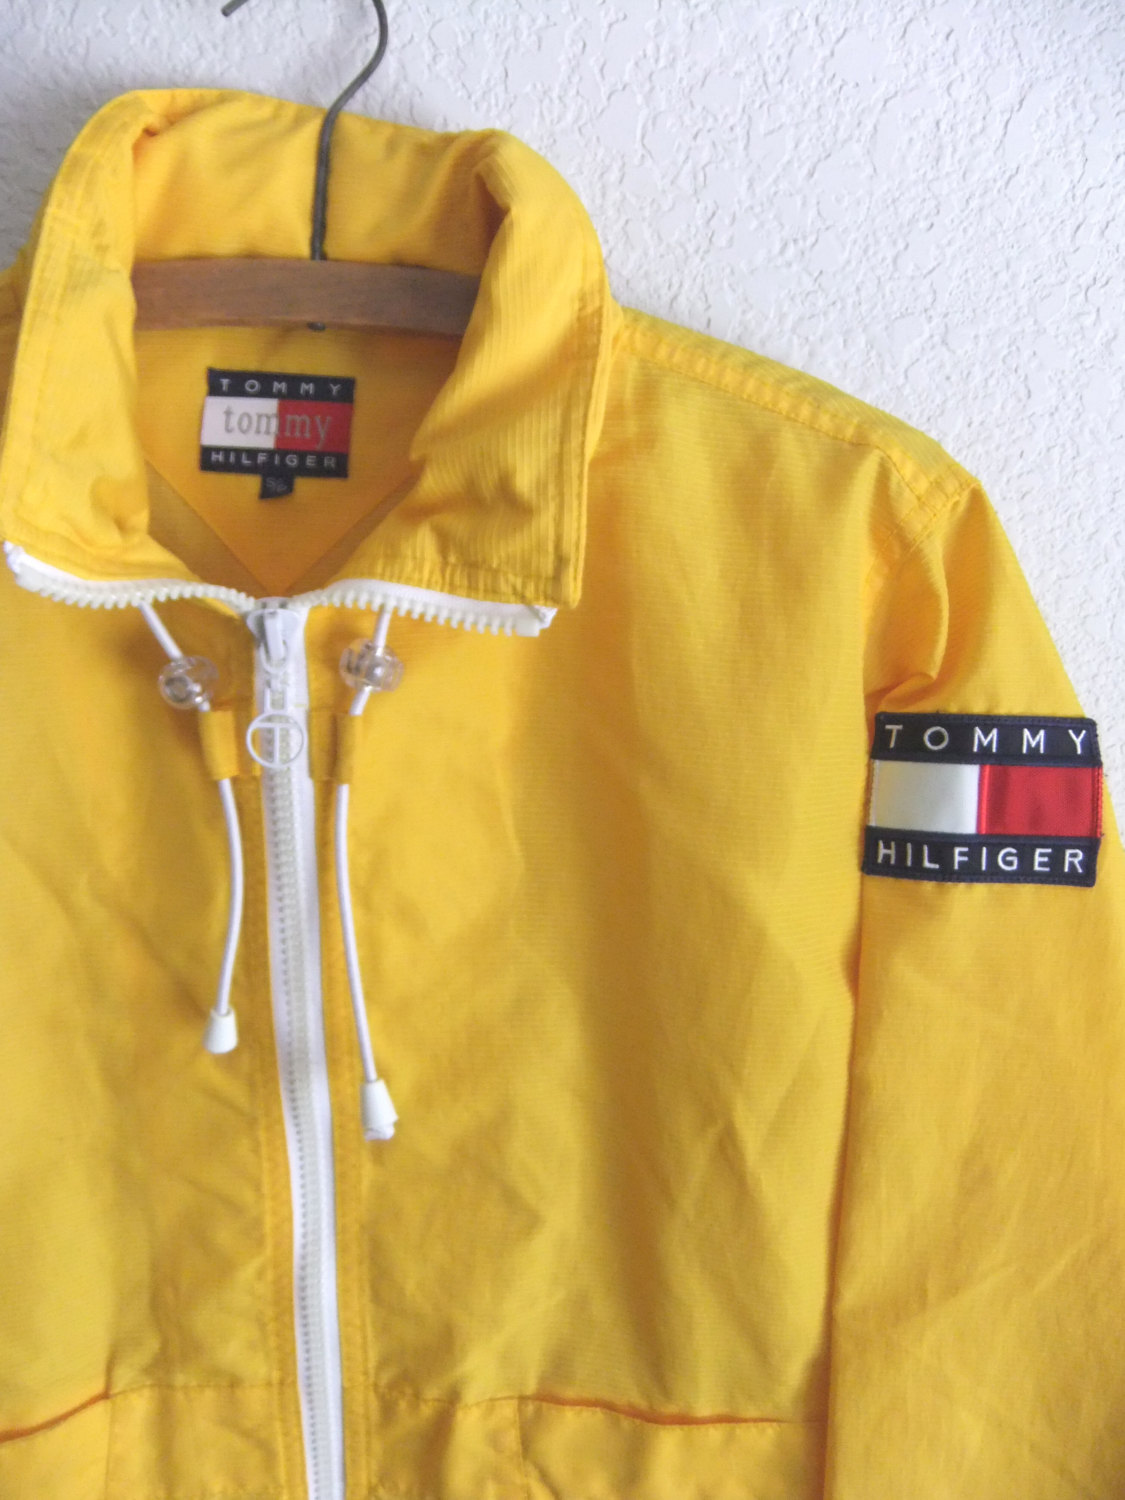 90s Tommy Hilfiger Anorak Raincoat - Club Kid Yellow Textured Parka with Convertible Hood - Mens size XS / S